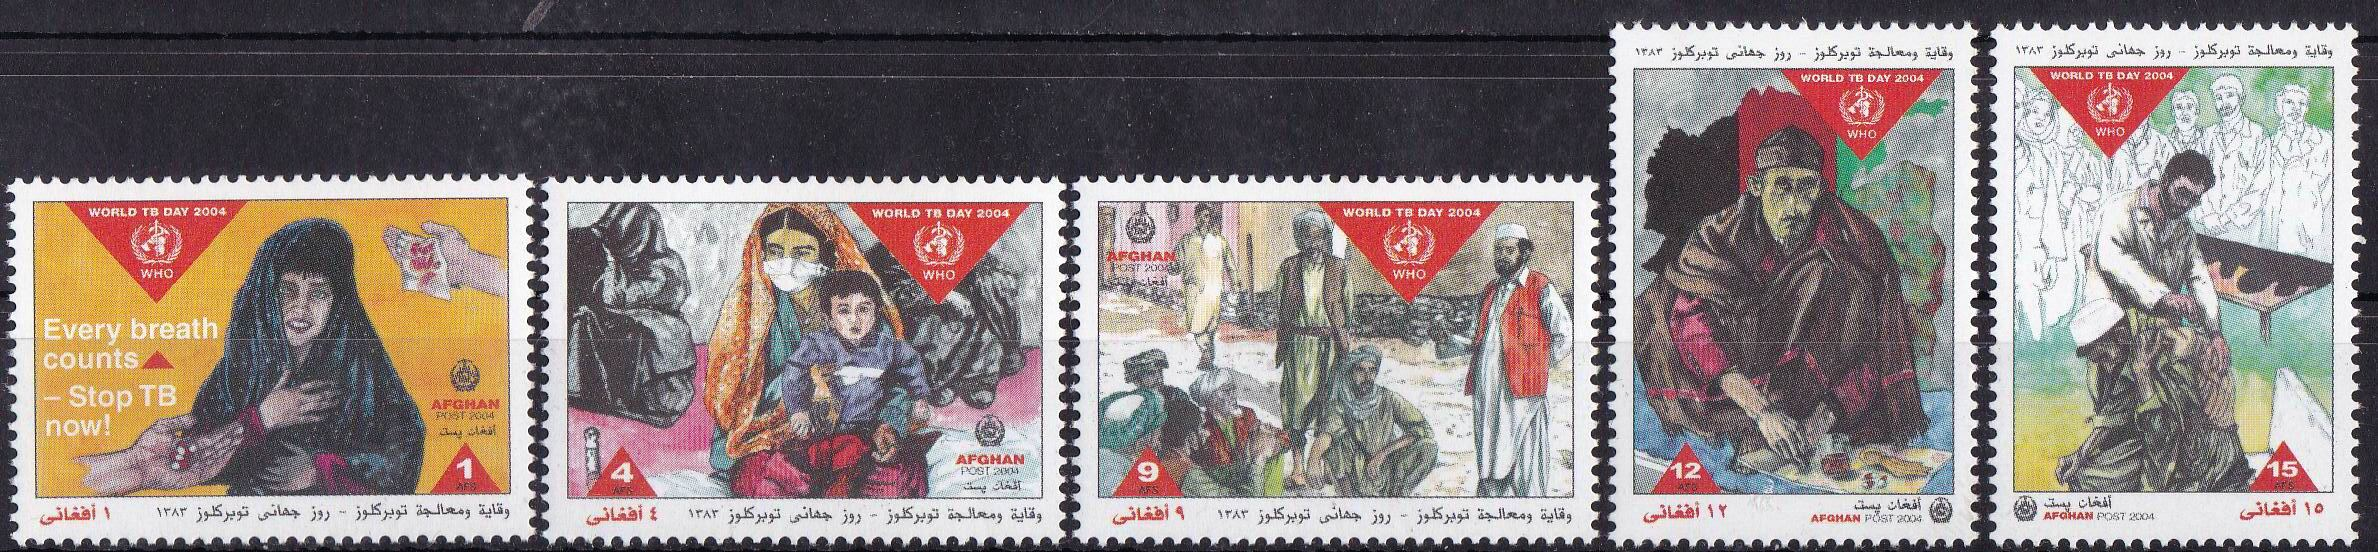 Afghanistan 2004 Stamps World TB Day